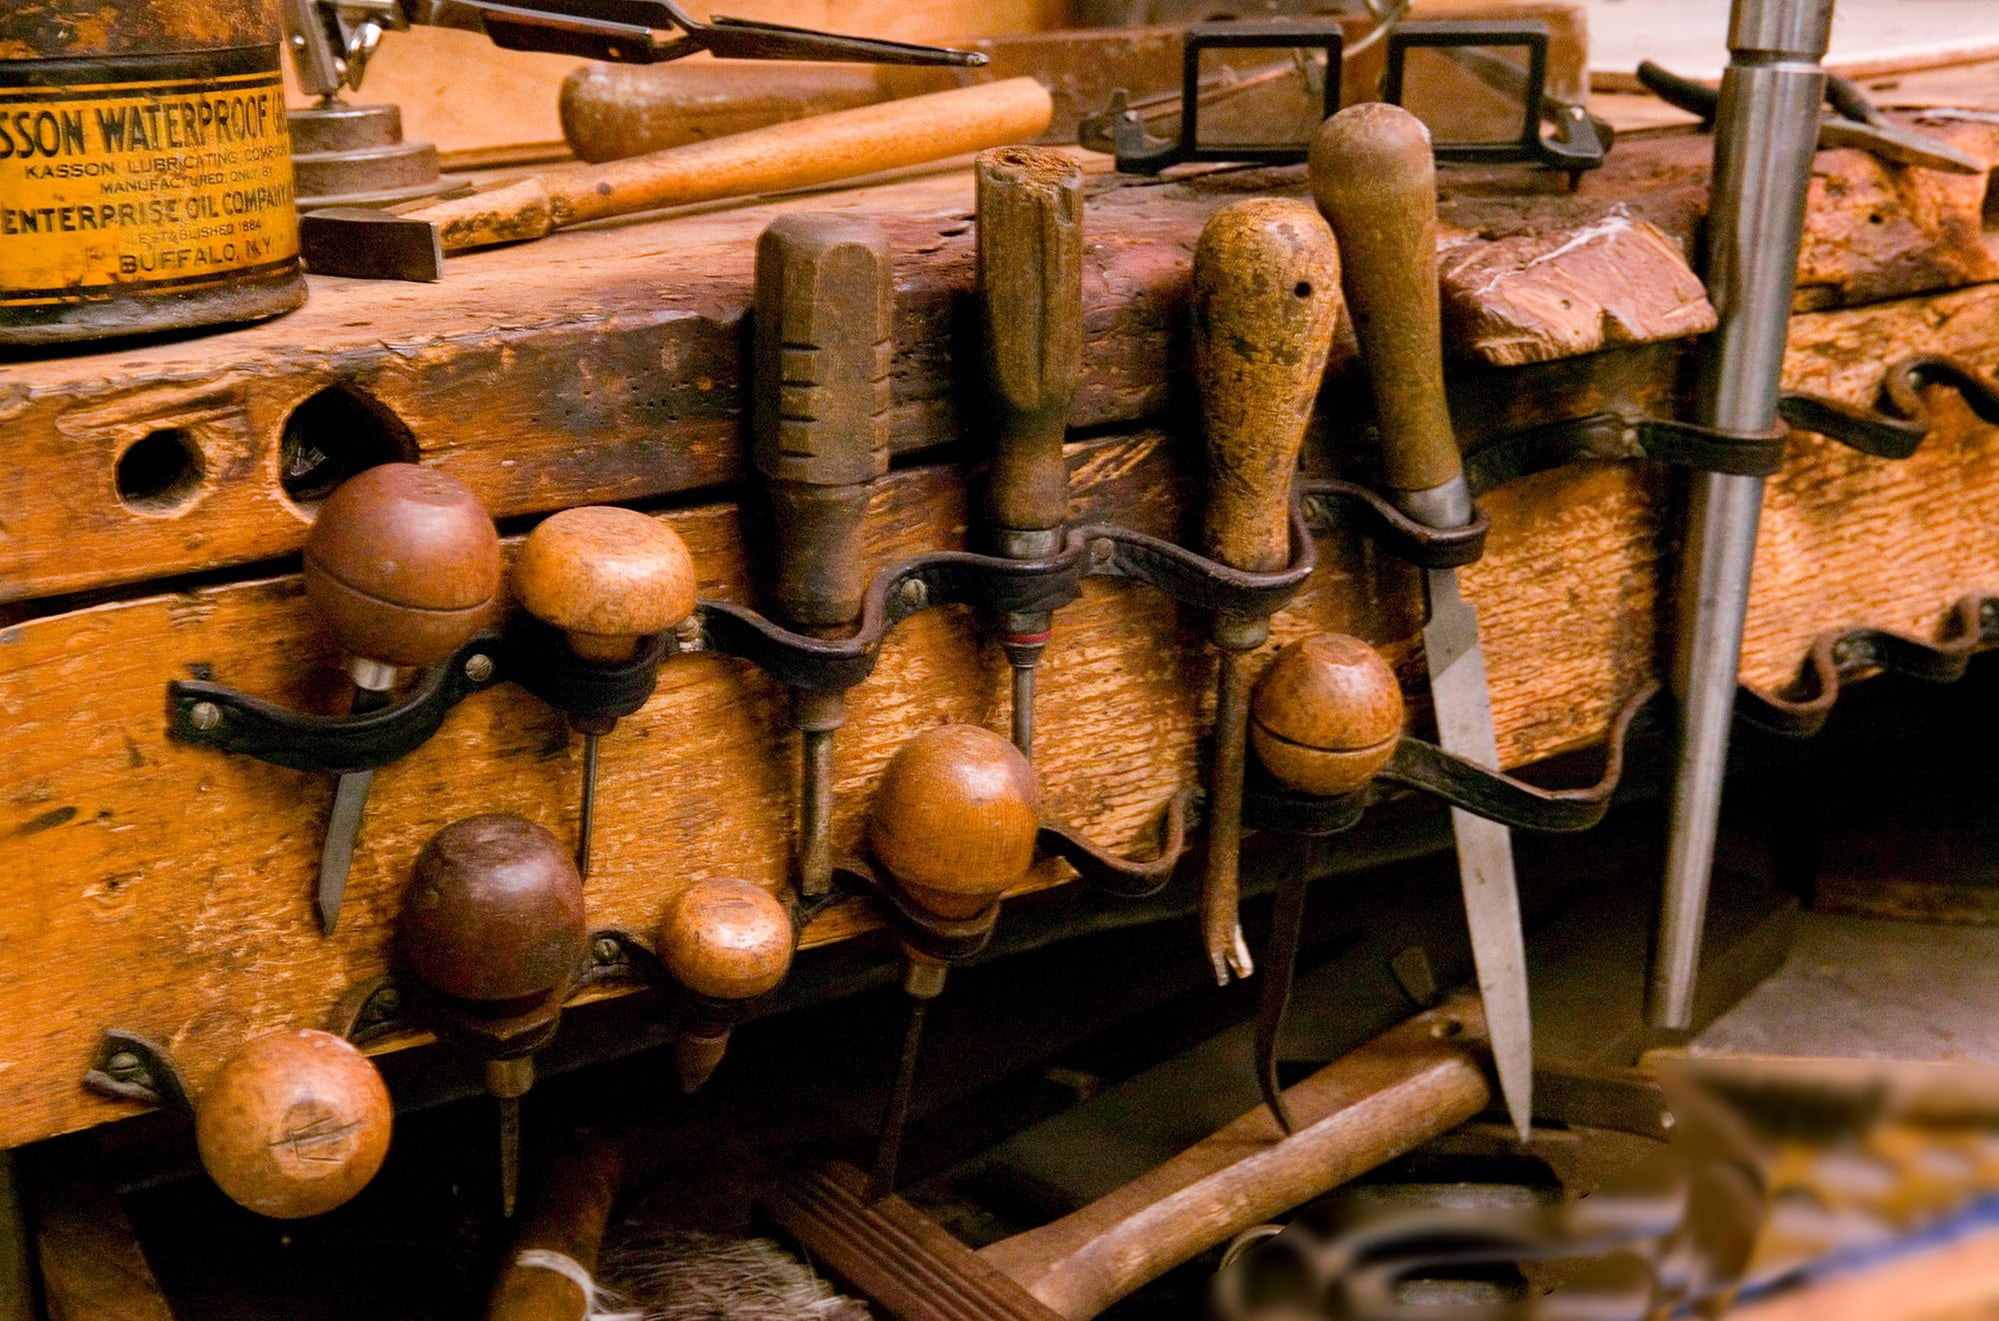 Workbench showing jewelry repair tools organized on hooks